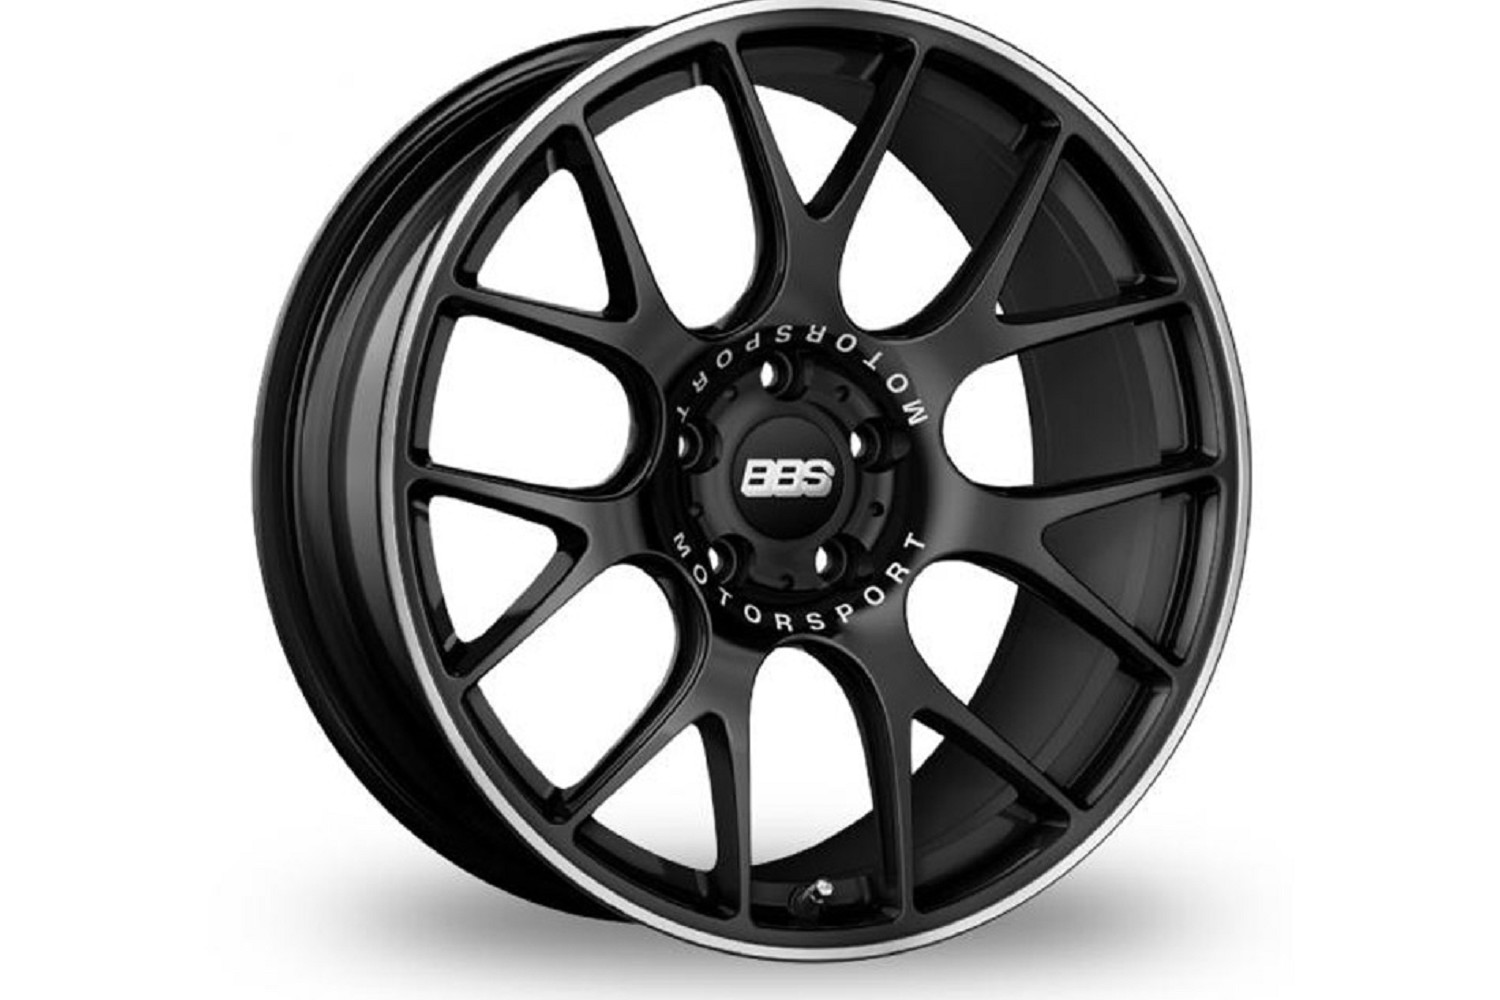 Bbs Ch R Ford Fusion Black Wheel W Polished Lip 20x85 13 14 2007 Cooling System